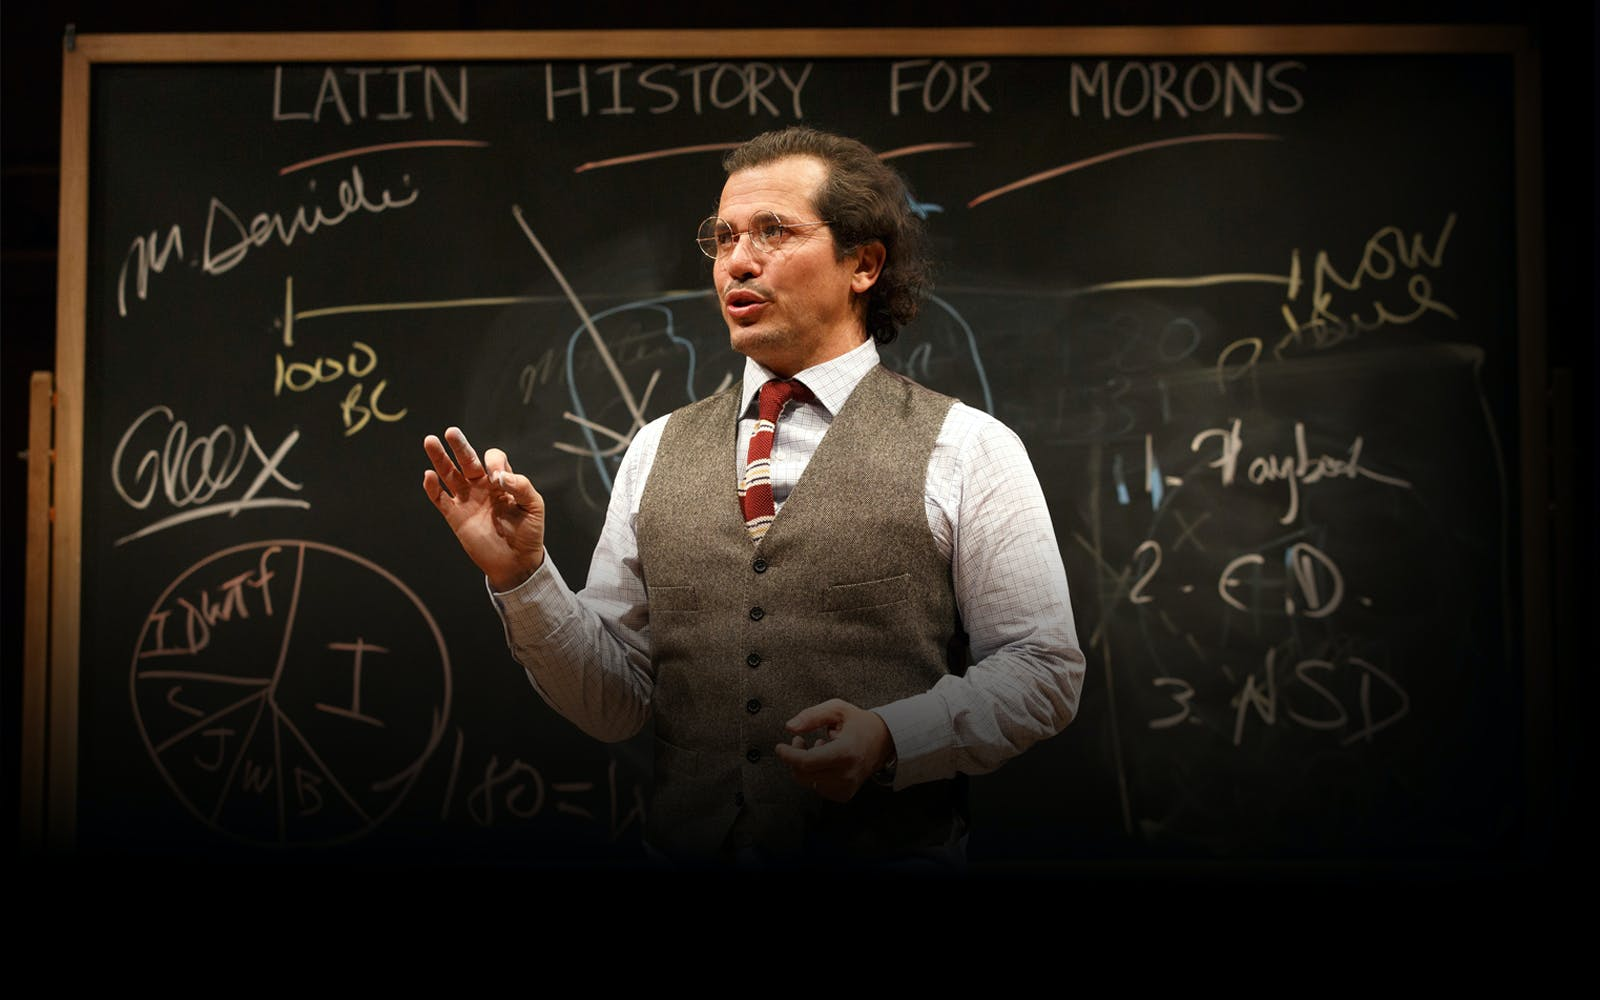 Best Broadway Shows - February 2017 - Latin History for Morons